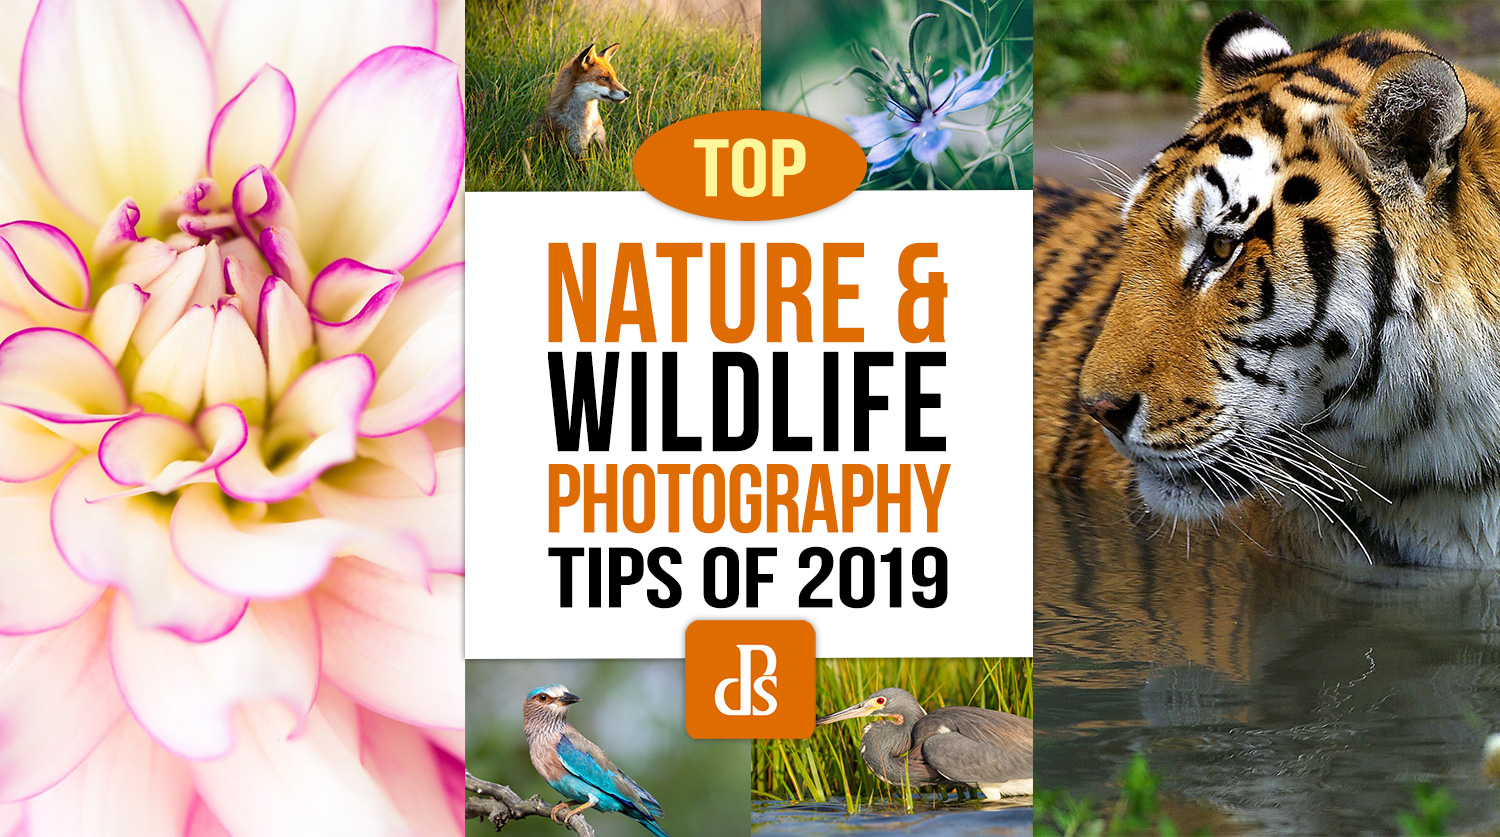 https://i2.wp.com/digital-photography-school.com/wp-content/uploads/2020/01/dps-top-nature-and-wildlife-photography-tips-2019.jpg?resize=1500%2C837&ssl=1